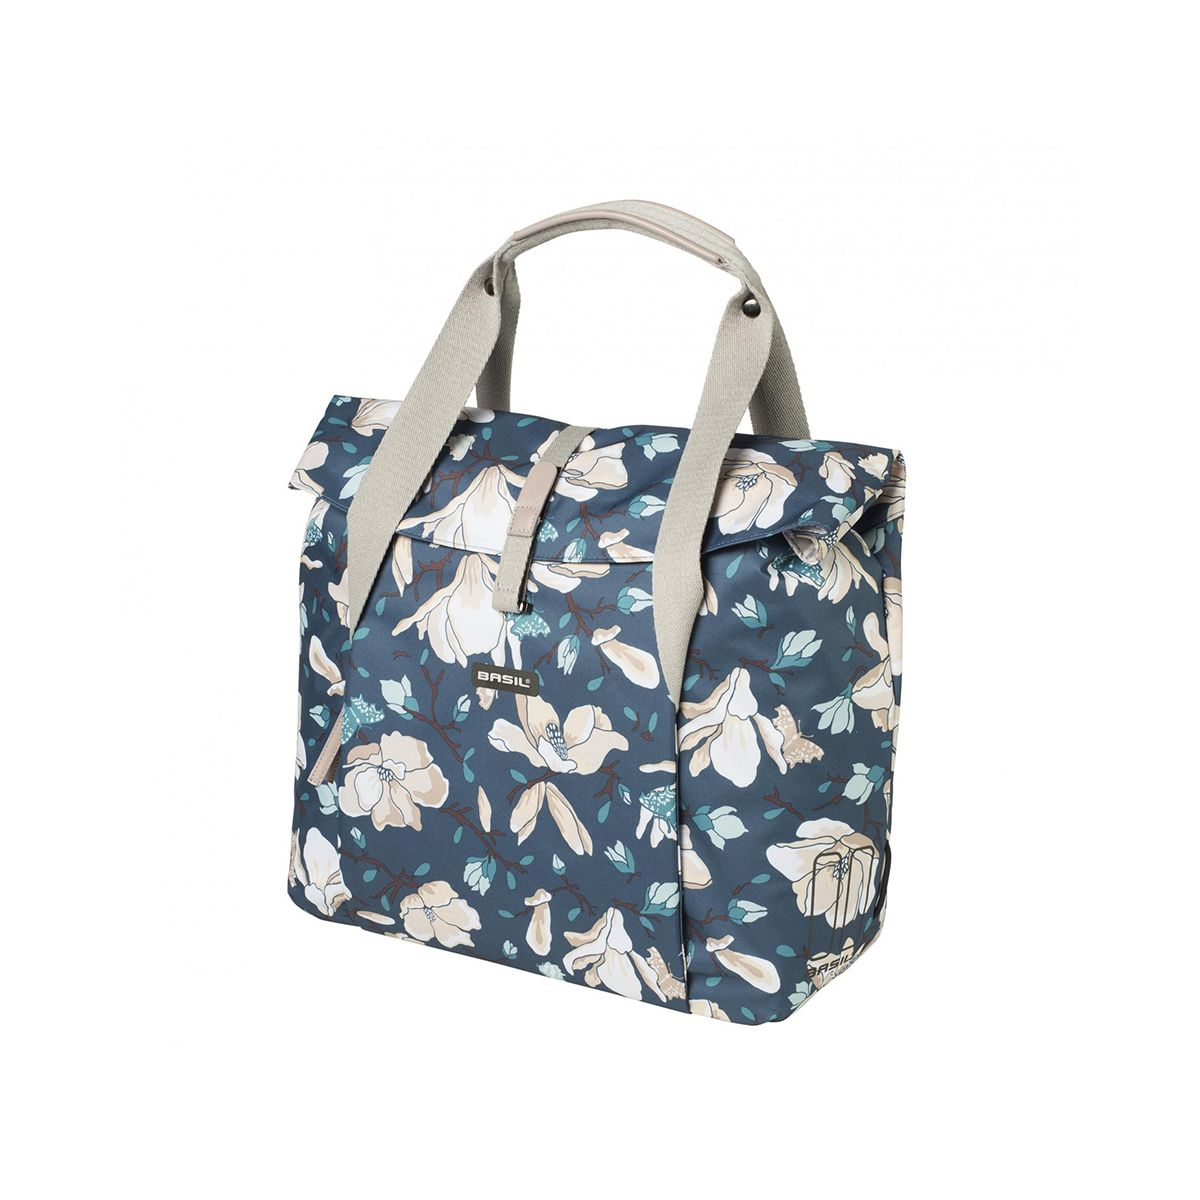 MAGNOLIA SHOPPER bicycle bag